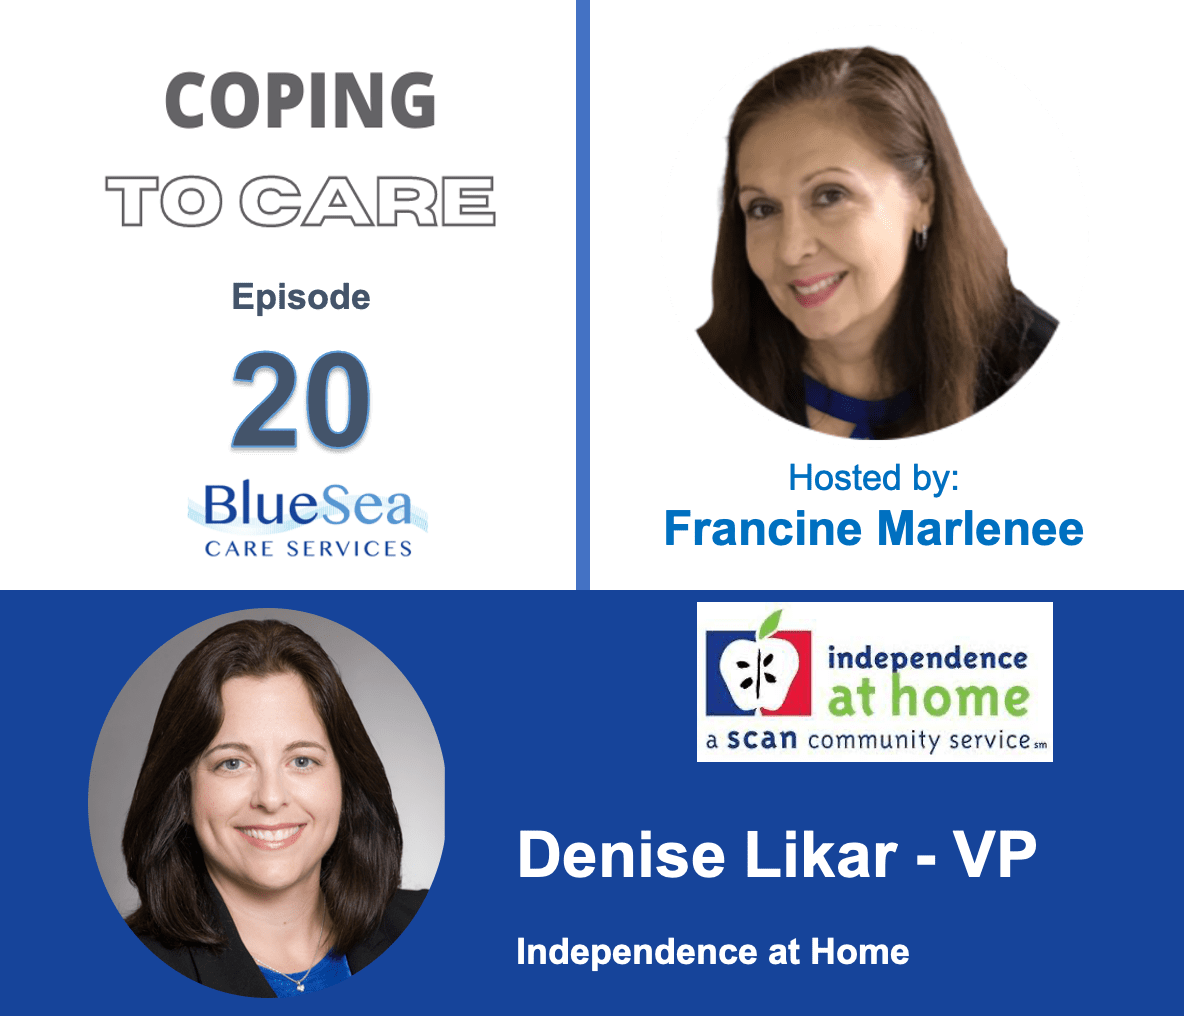 Independence at Home with Denise Likar from SCAN Health